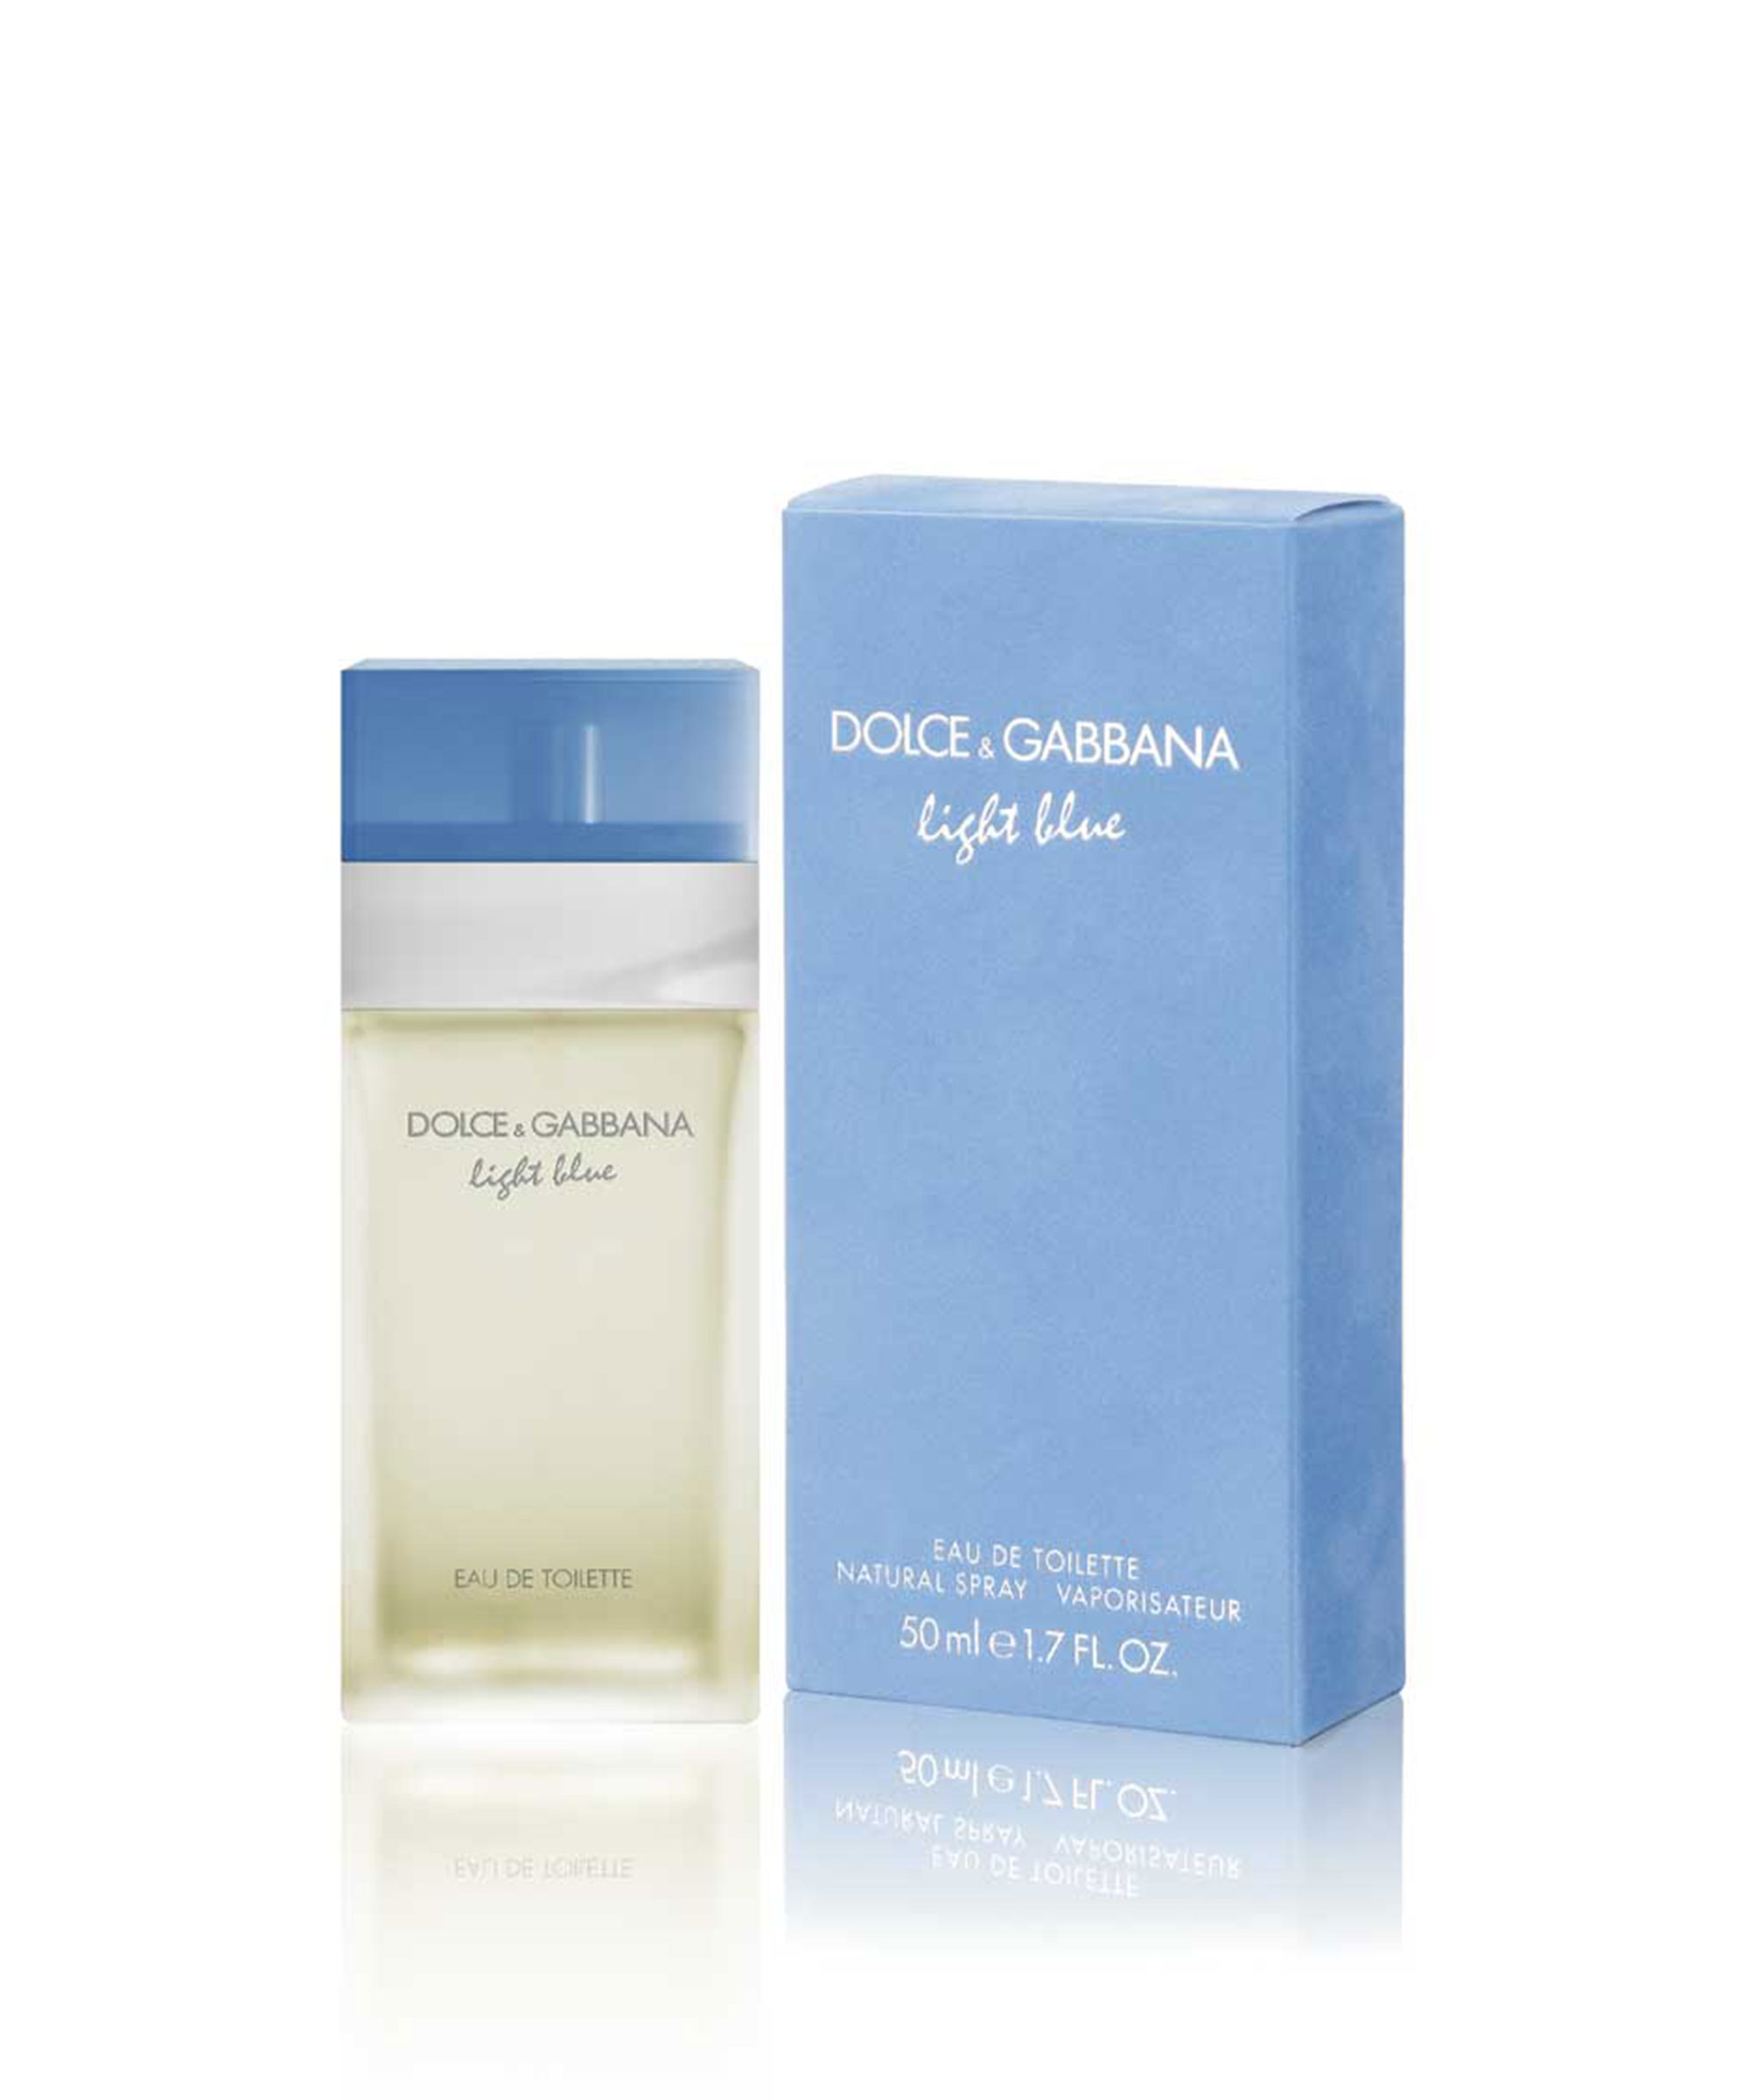 2446abb4a DOLCE & GABBANA LIGHT BLUE FOR WOMEN EAU DE TOILETTE | Beauty Line ...